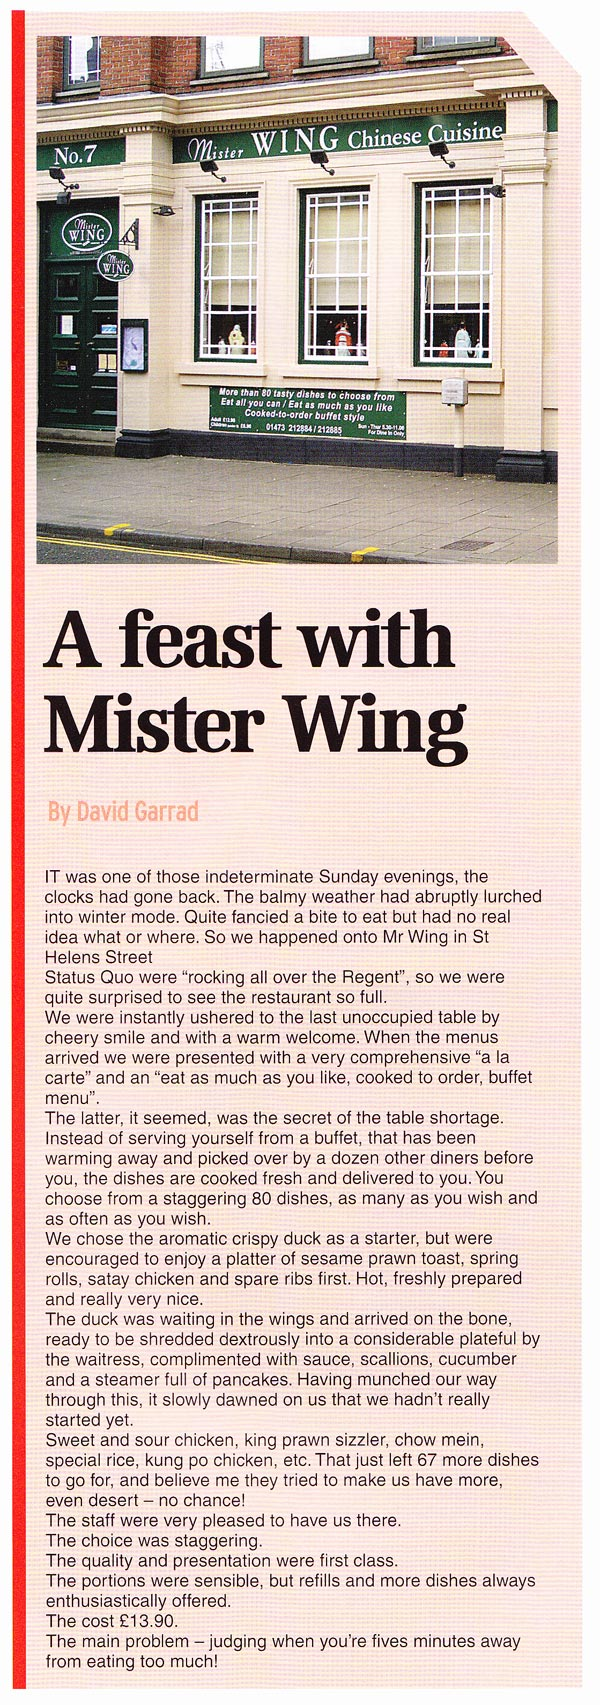 Mister Wing Review